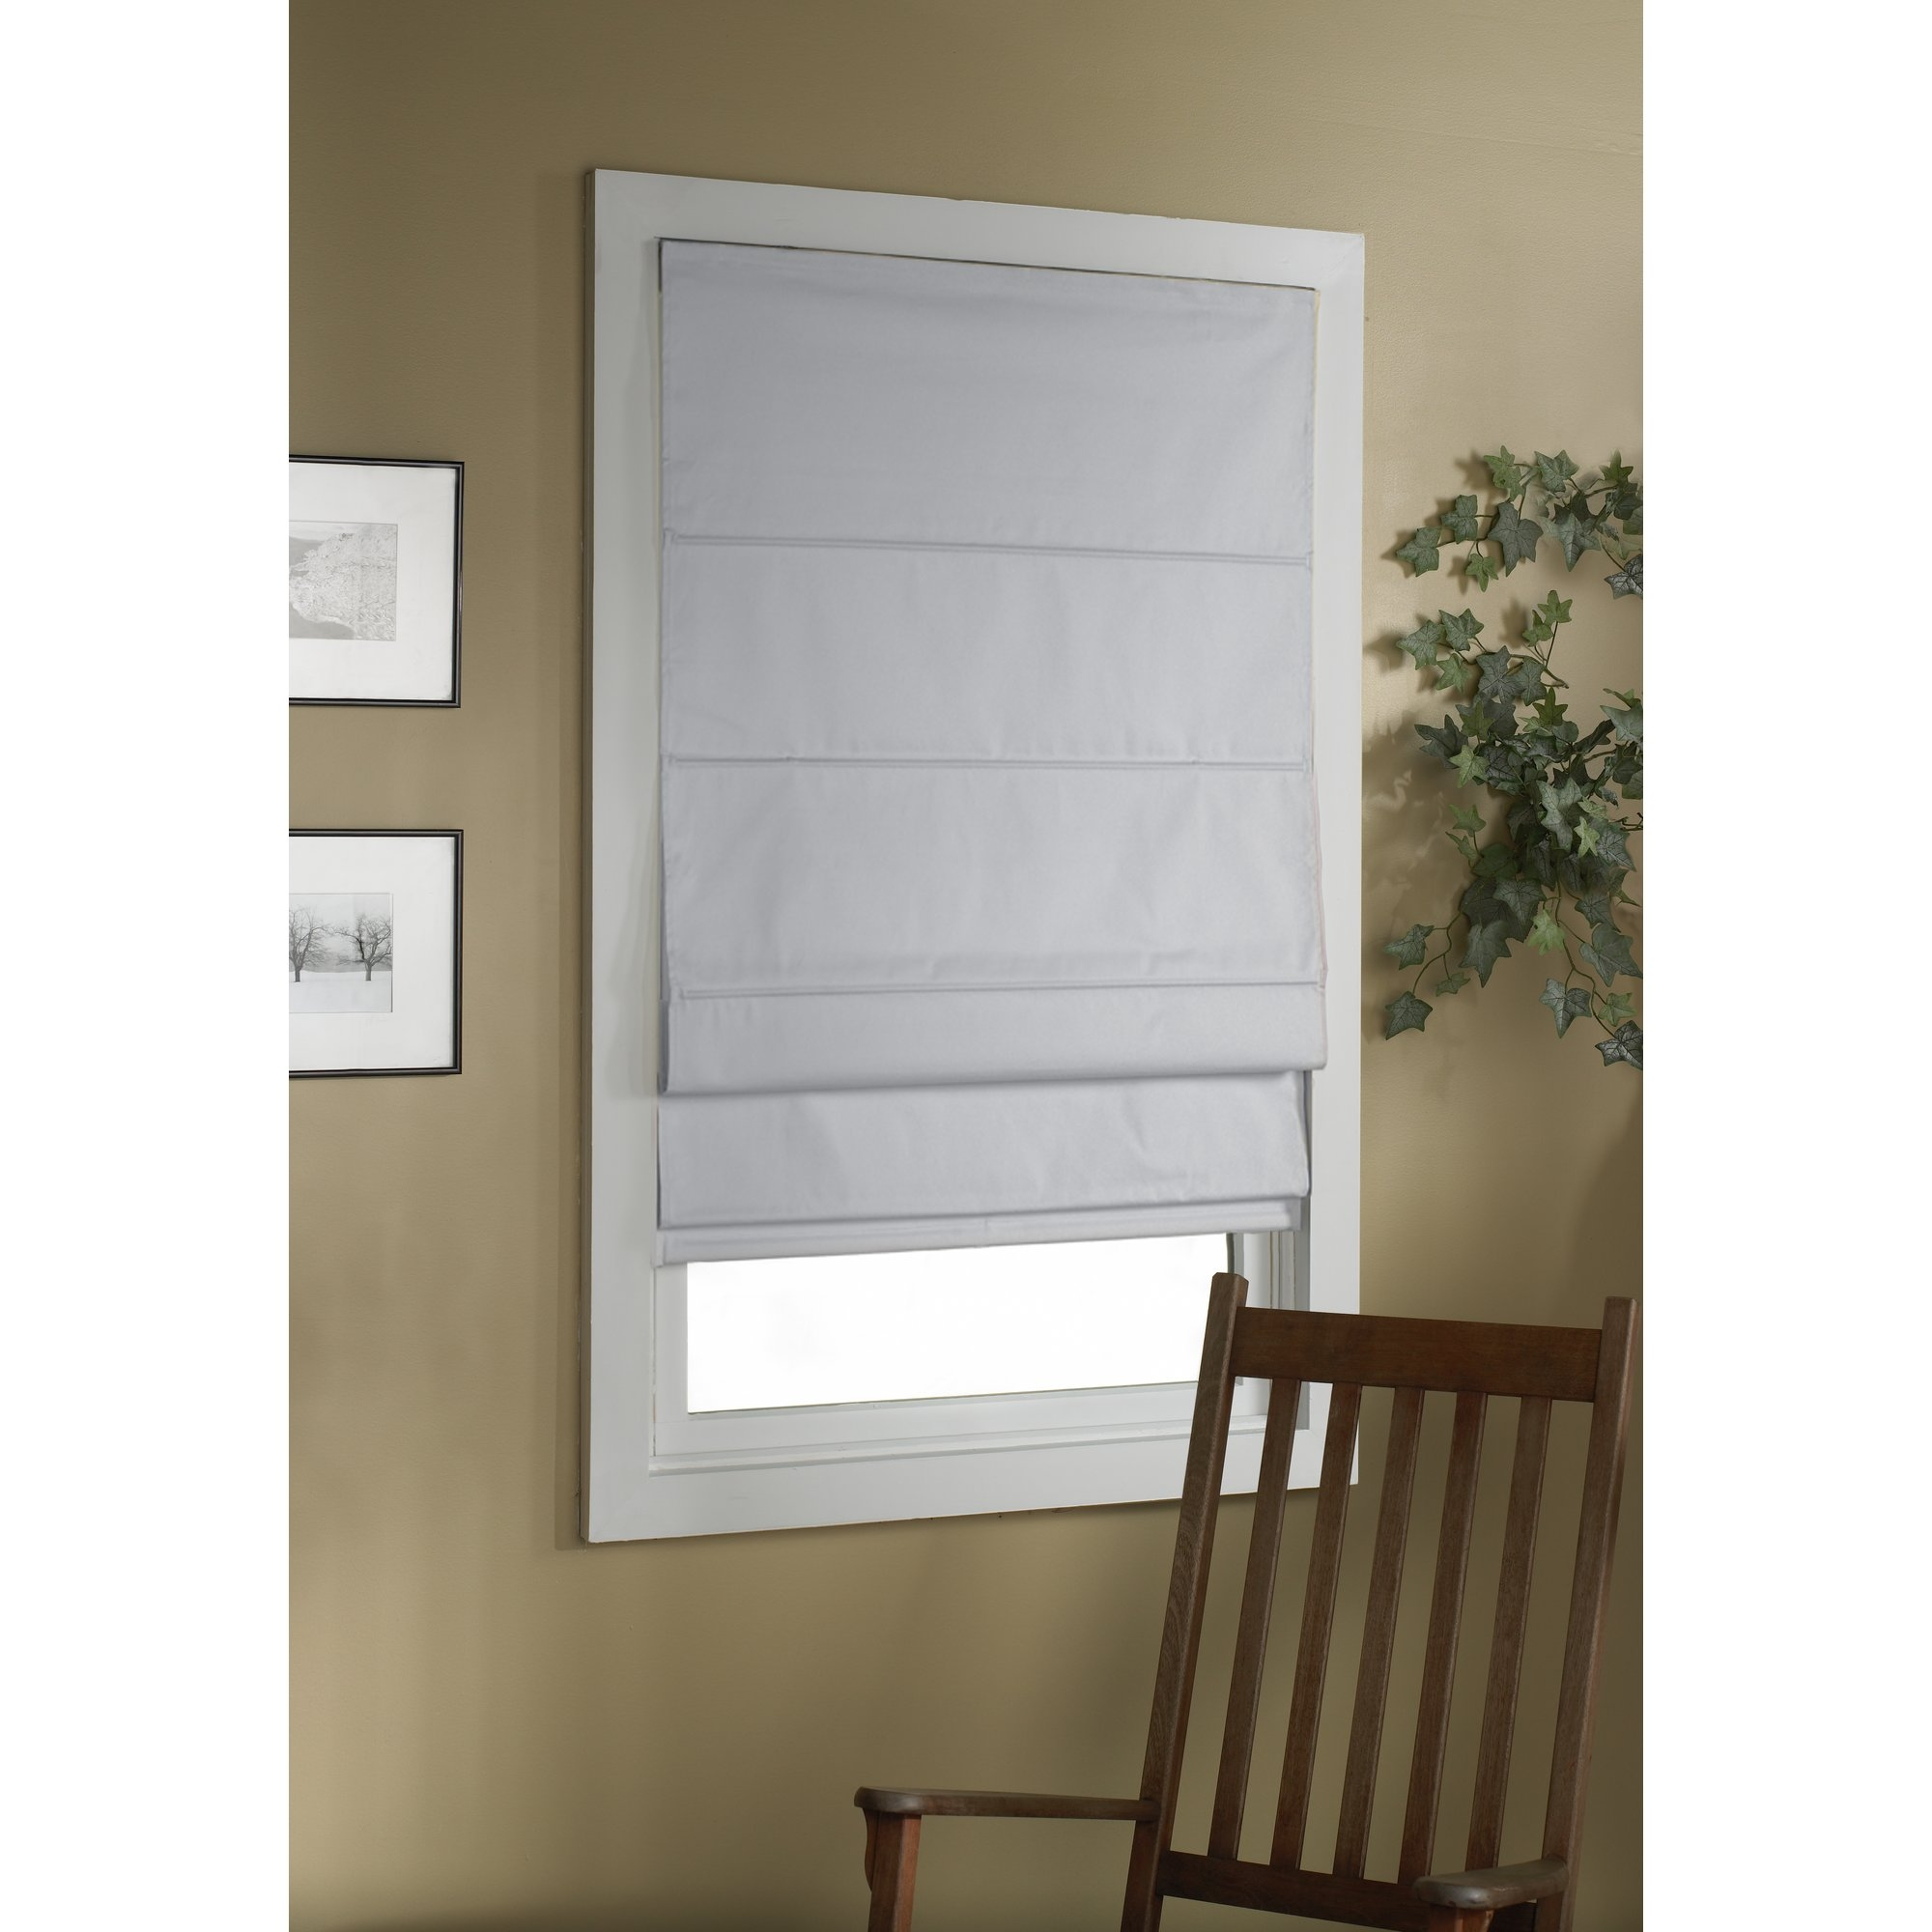 Symple Stuff Cordless Thermal Backed Roman Shade Reviews Wayfair In Thermal Lined Roman Shades (Image 14 of 15)